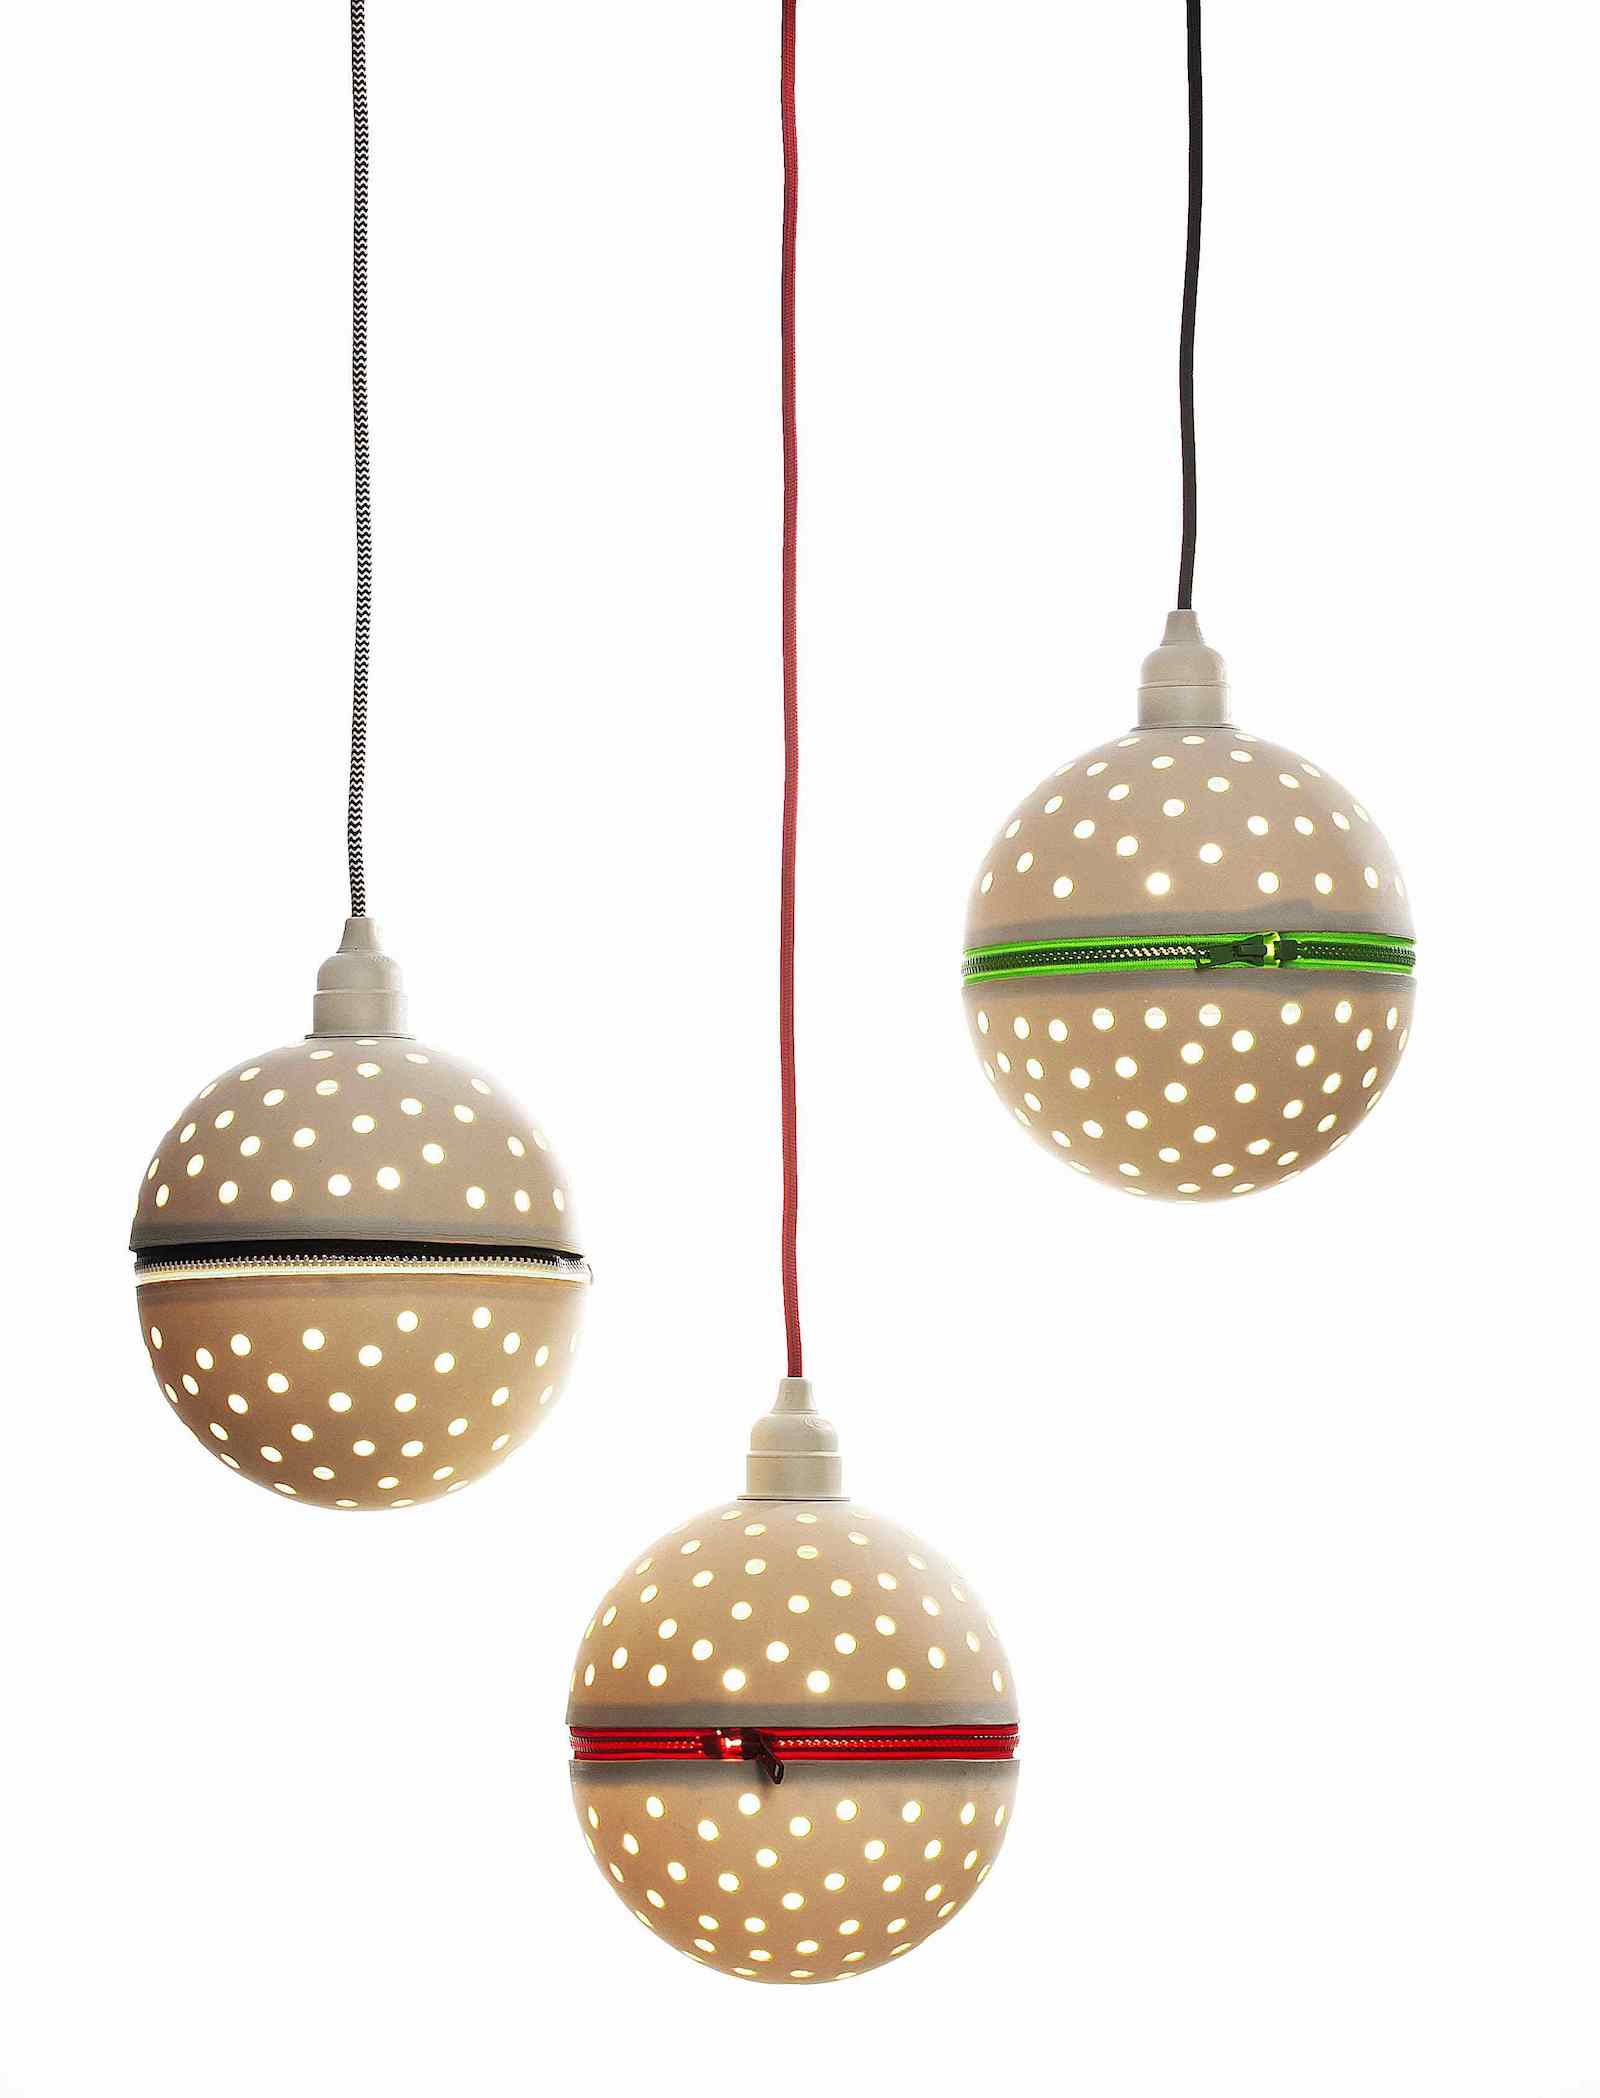 Group of three perforated porcelain globe pendants with colourful zips